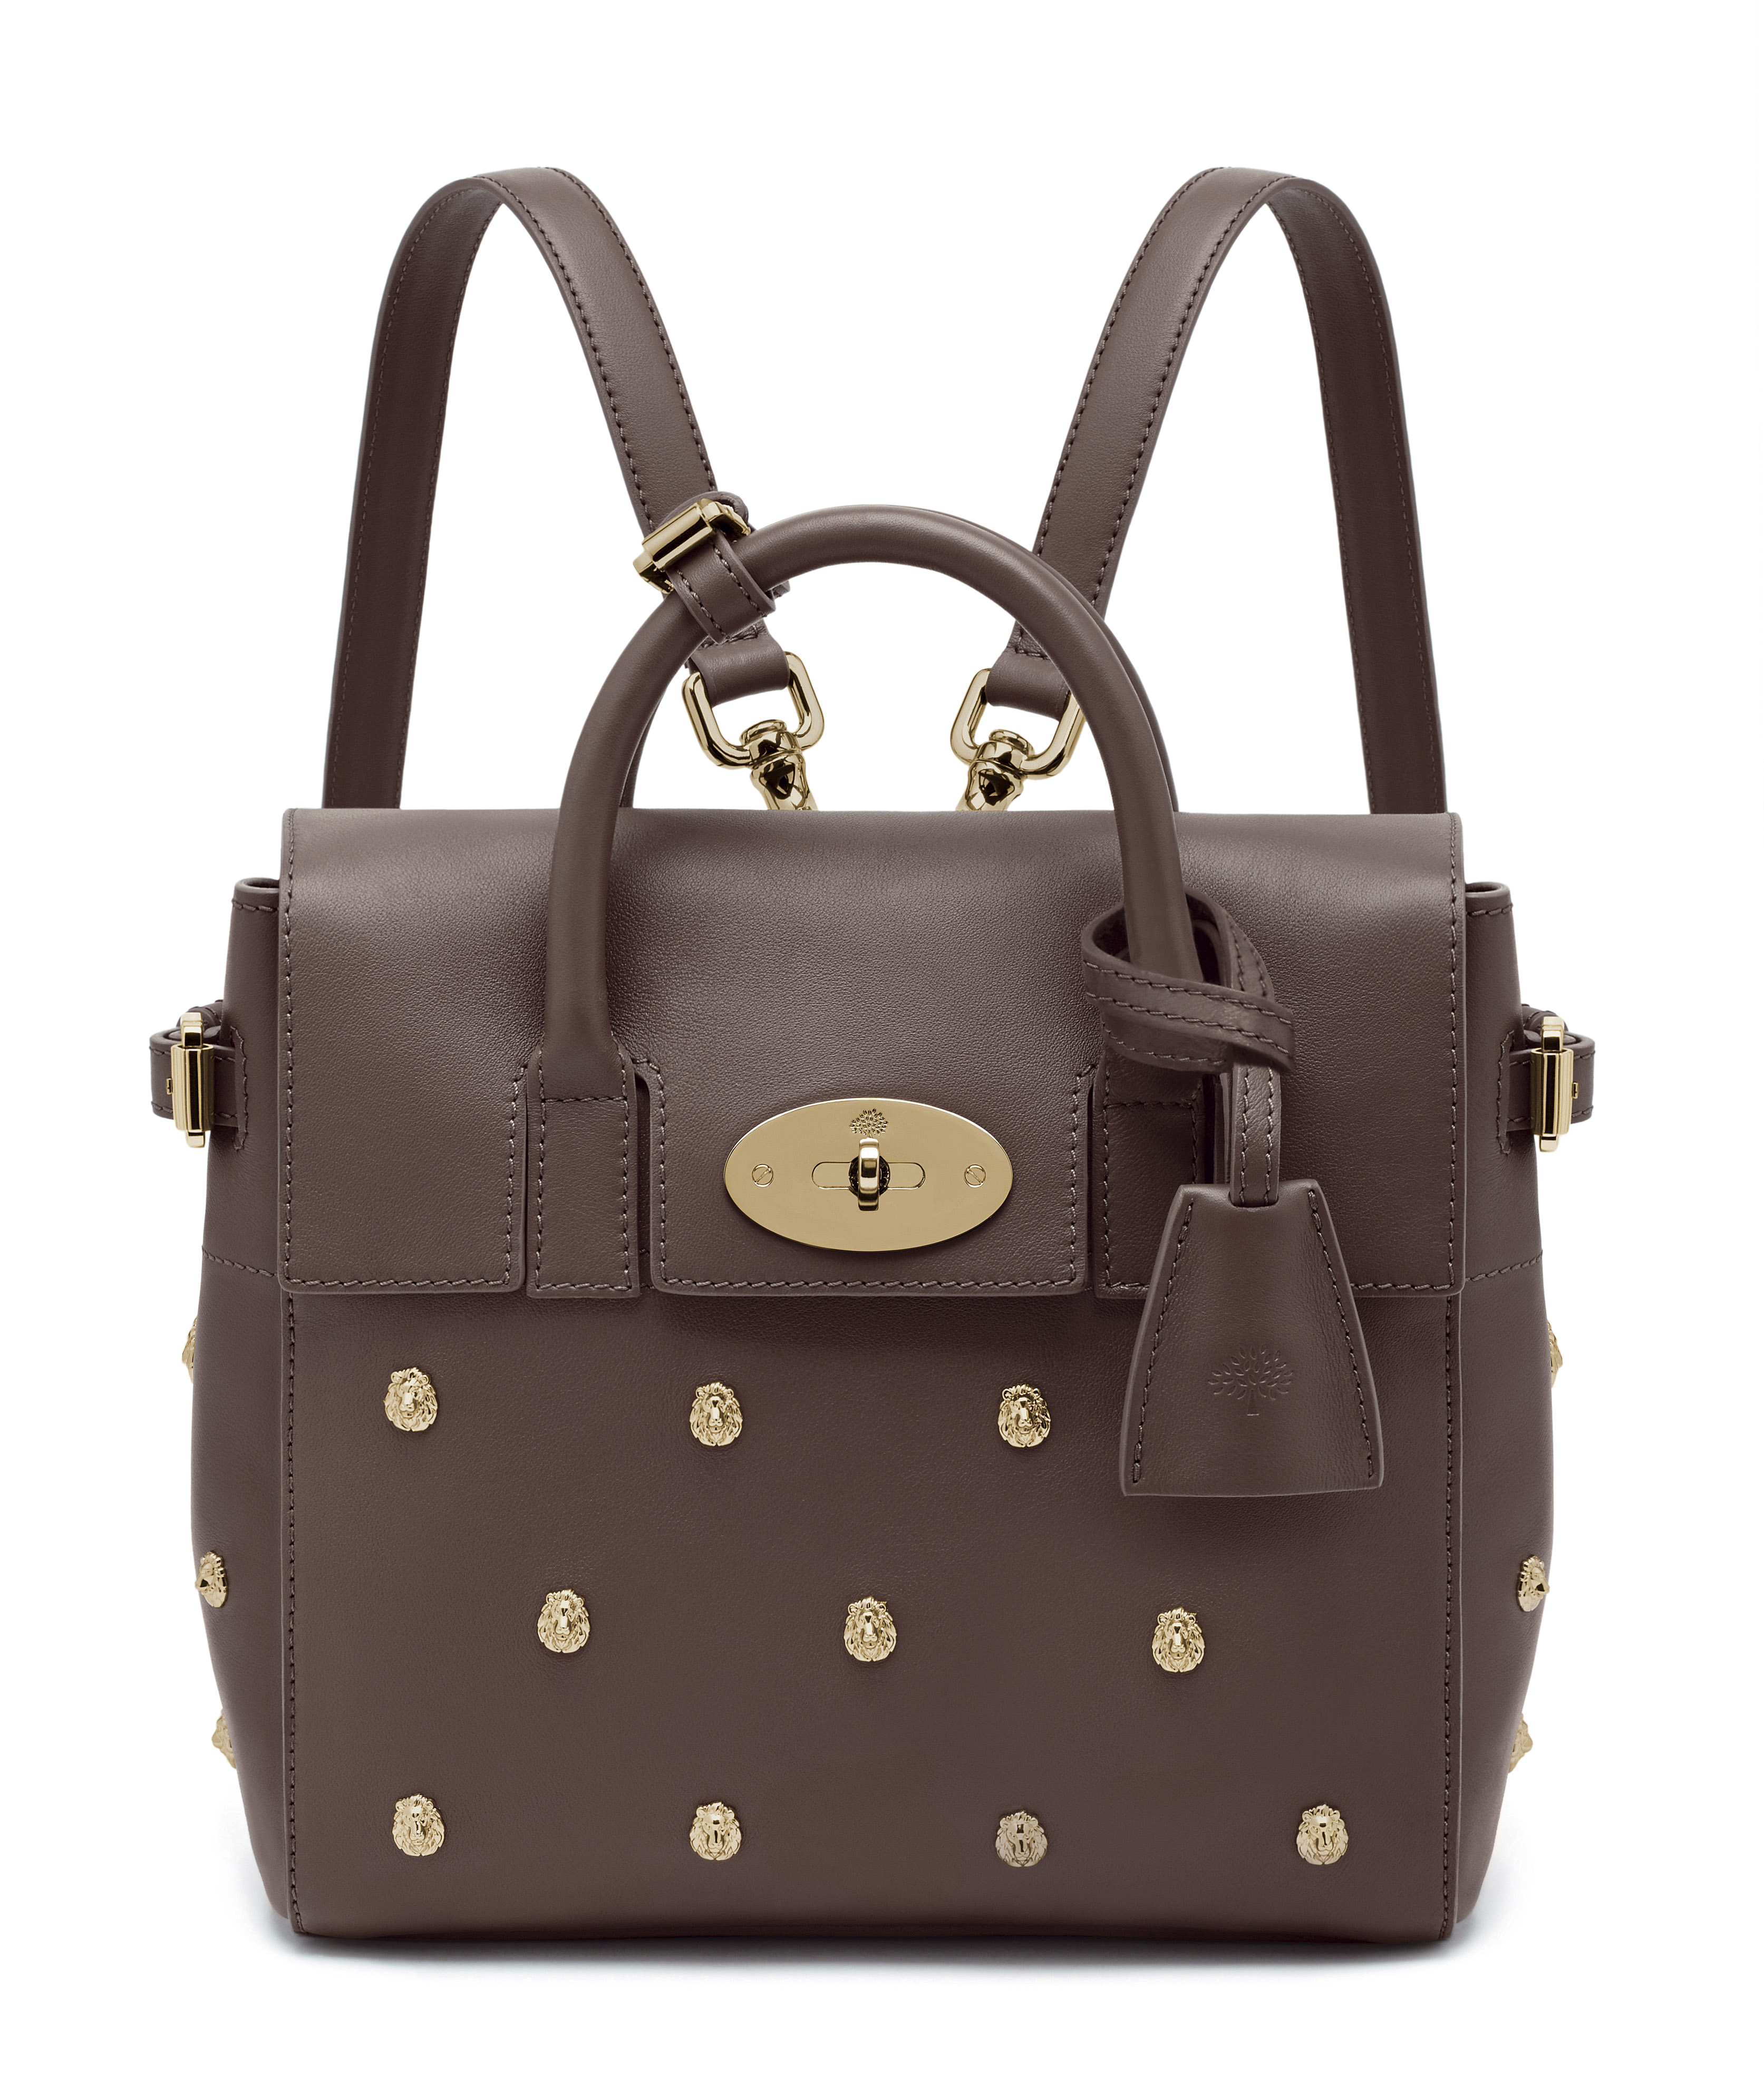 Mini Cara Delevingne Bag in Taupe Lion Rivets